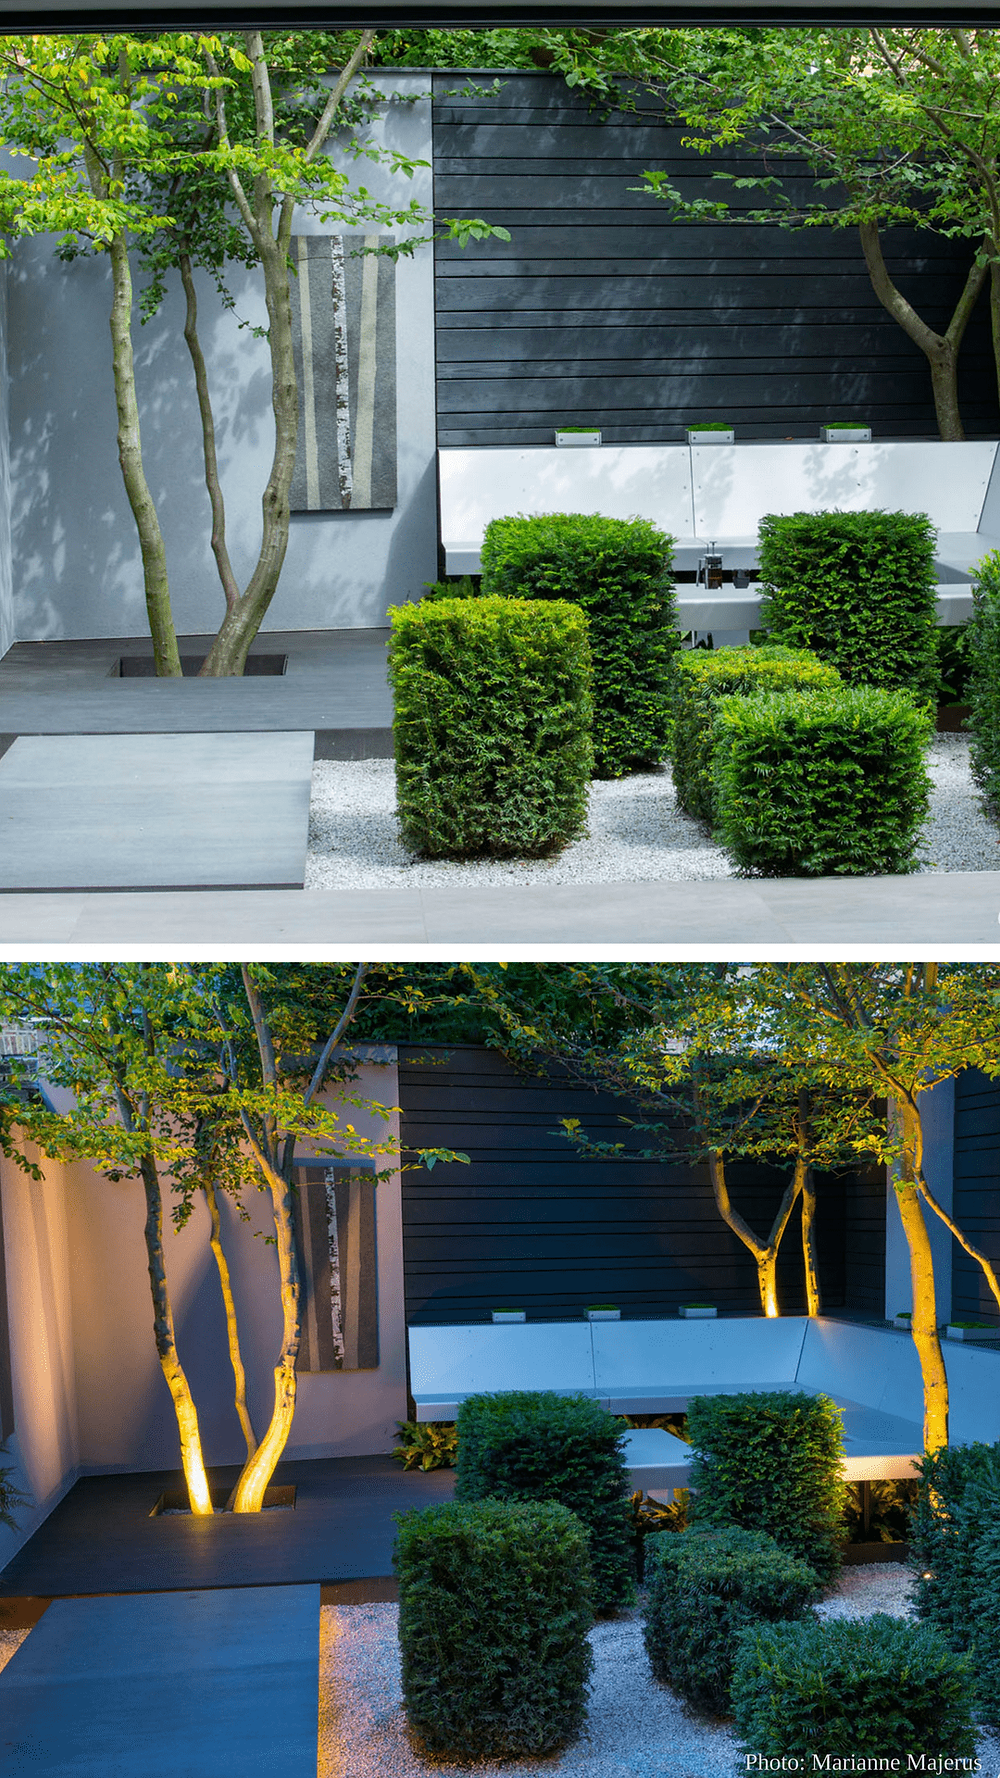 urban garden design lONDON TOP 10 GARDEN DESIGNERS, buxus plants and seating